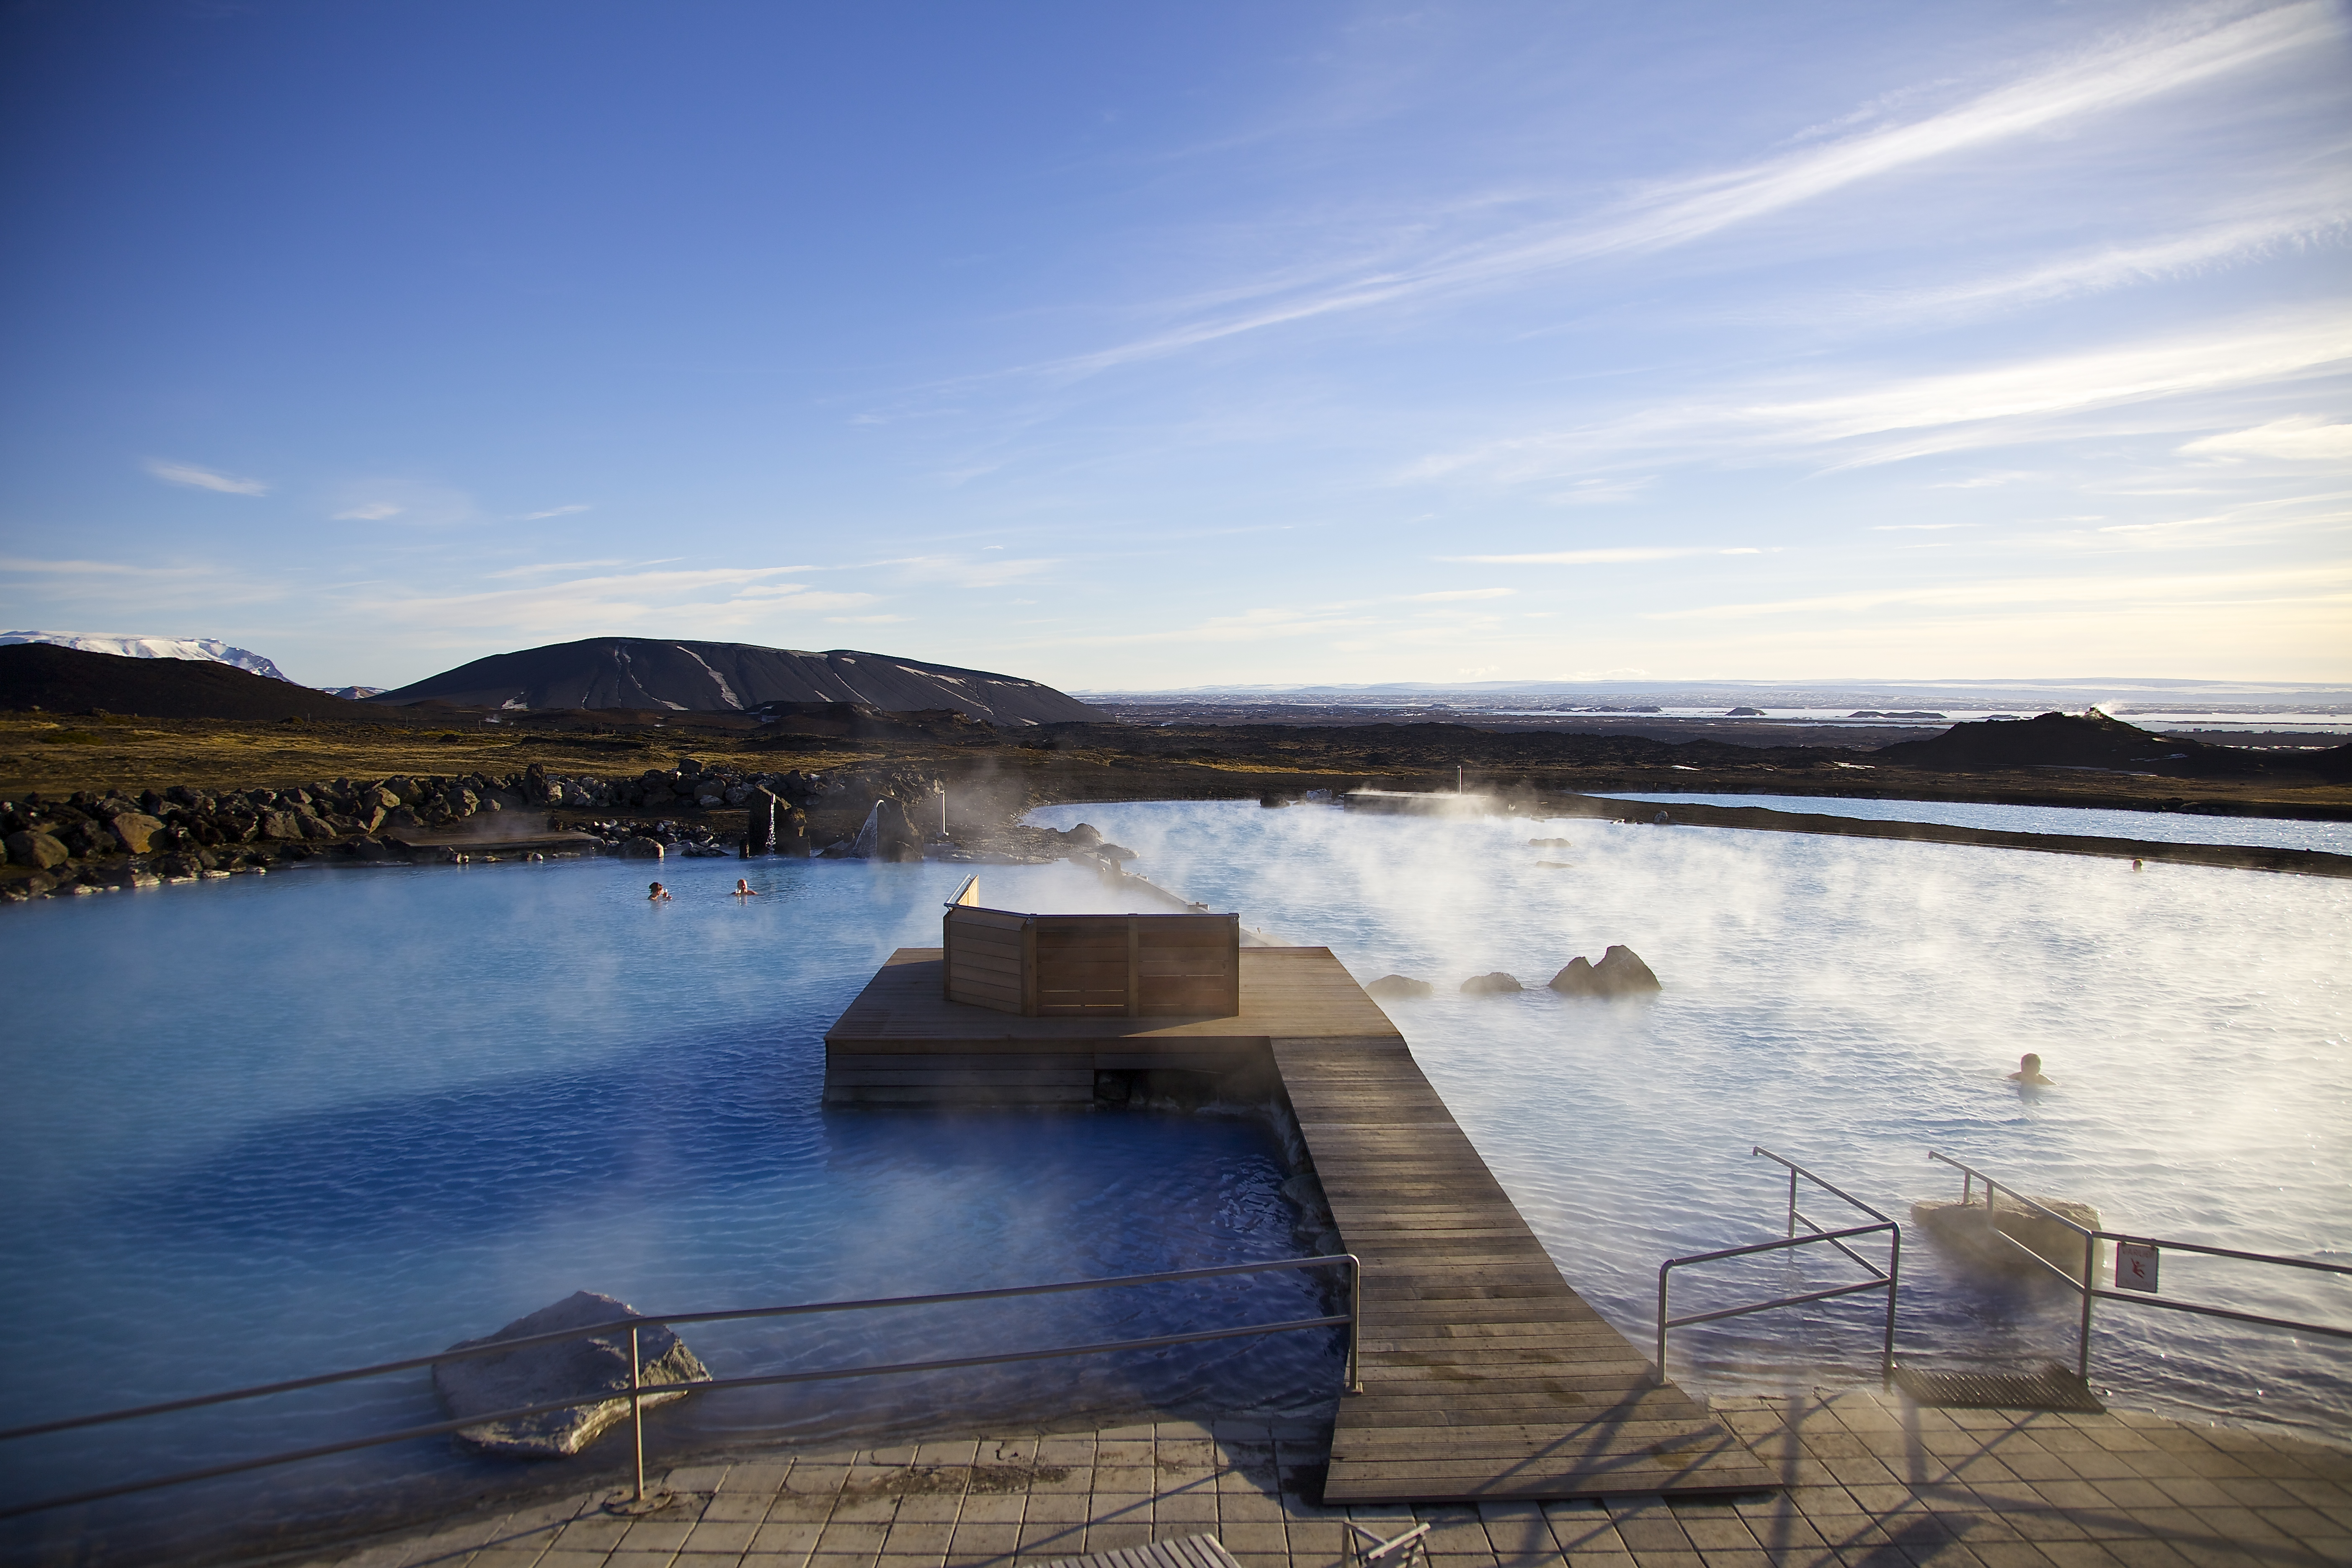 The Mývatn Nature Baths are the most popular geothermal pools in the North of Iceland.